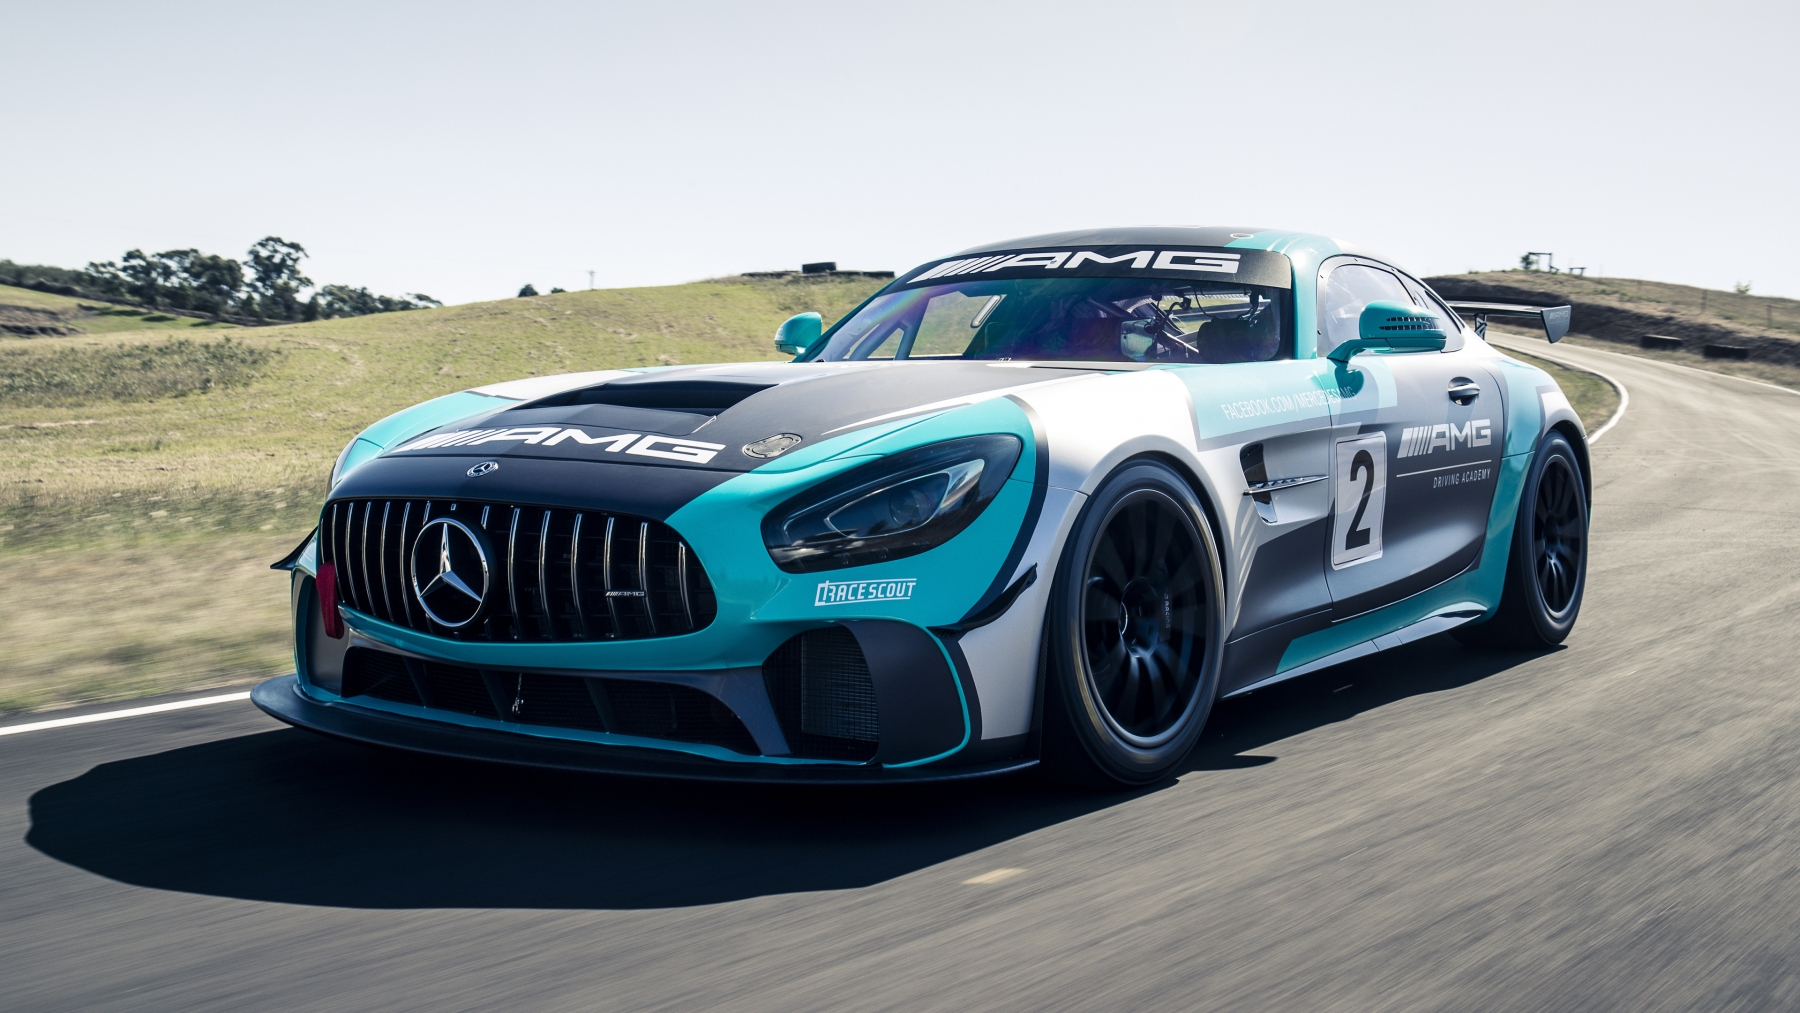 Mercedes AMG GT4 2019 HD Wallpaper and